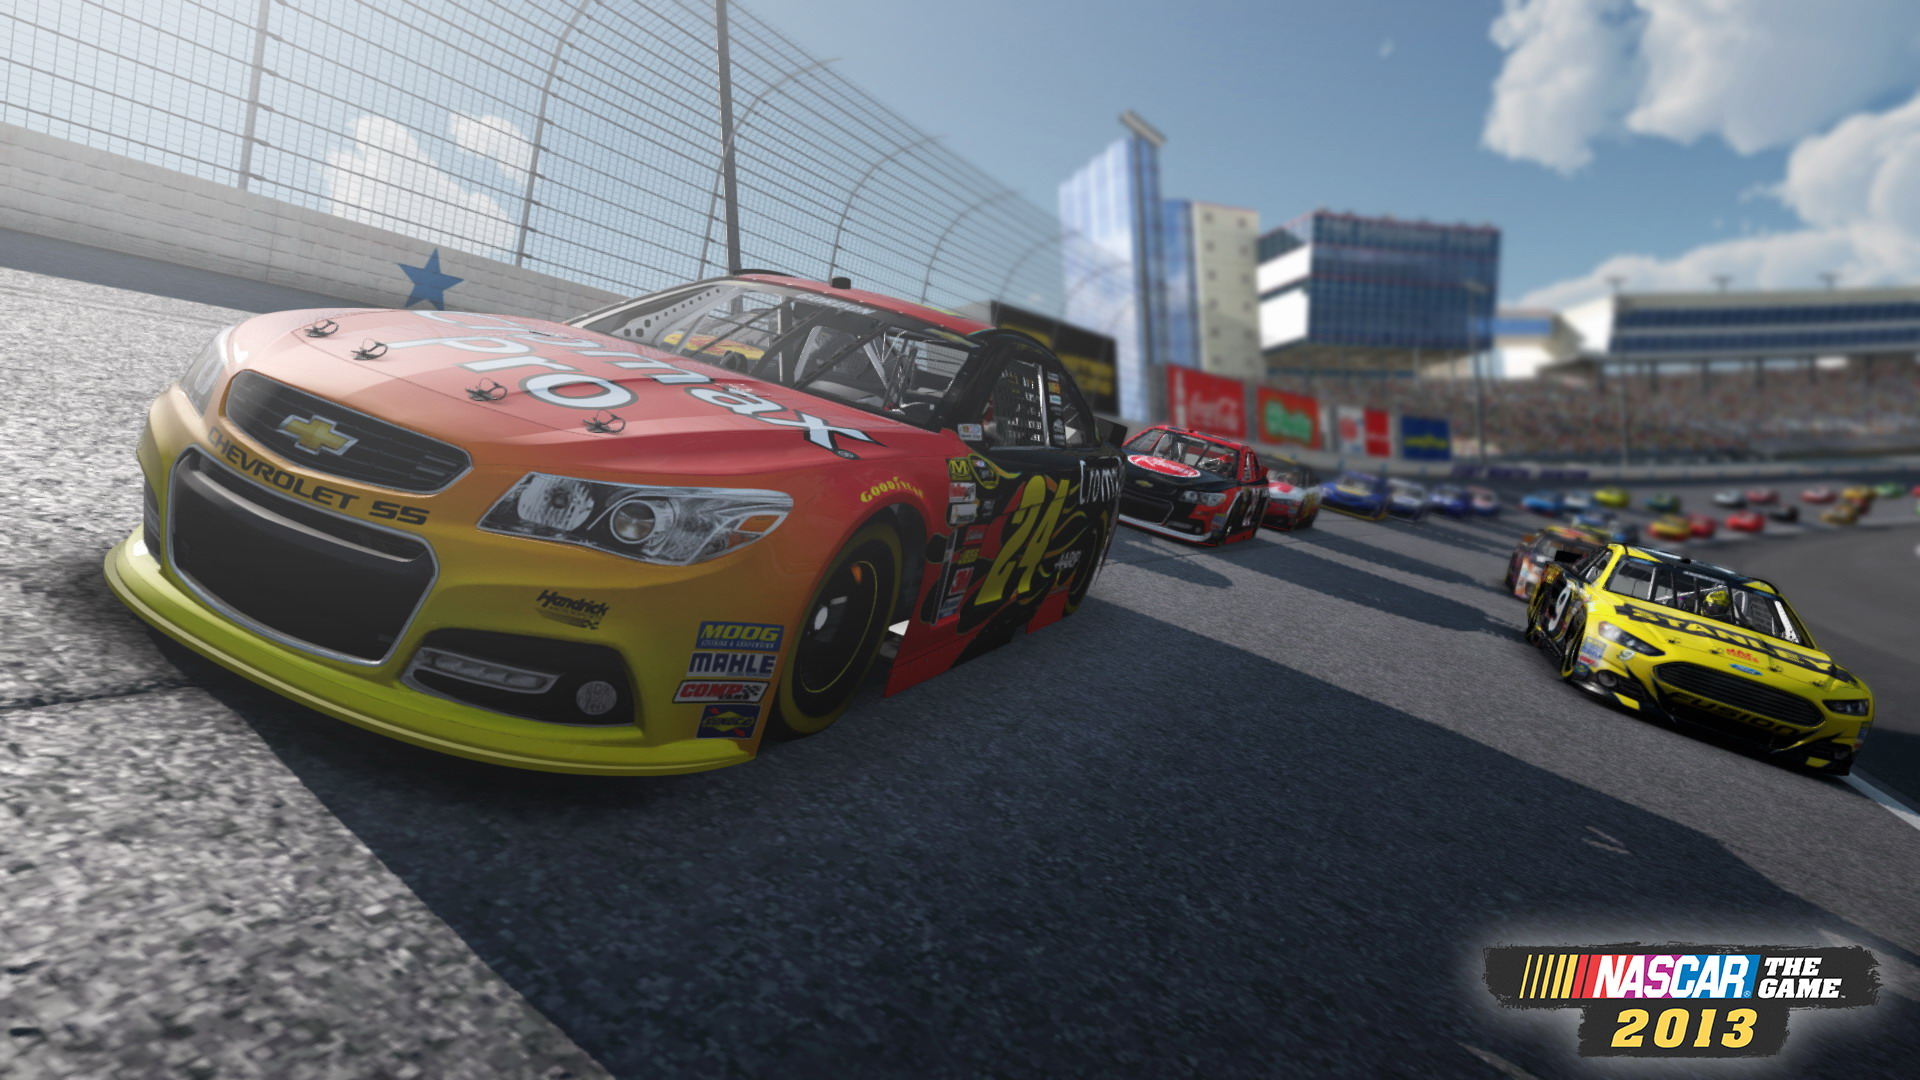 Nascar The Game on Race Cars Game Pc